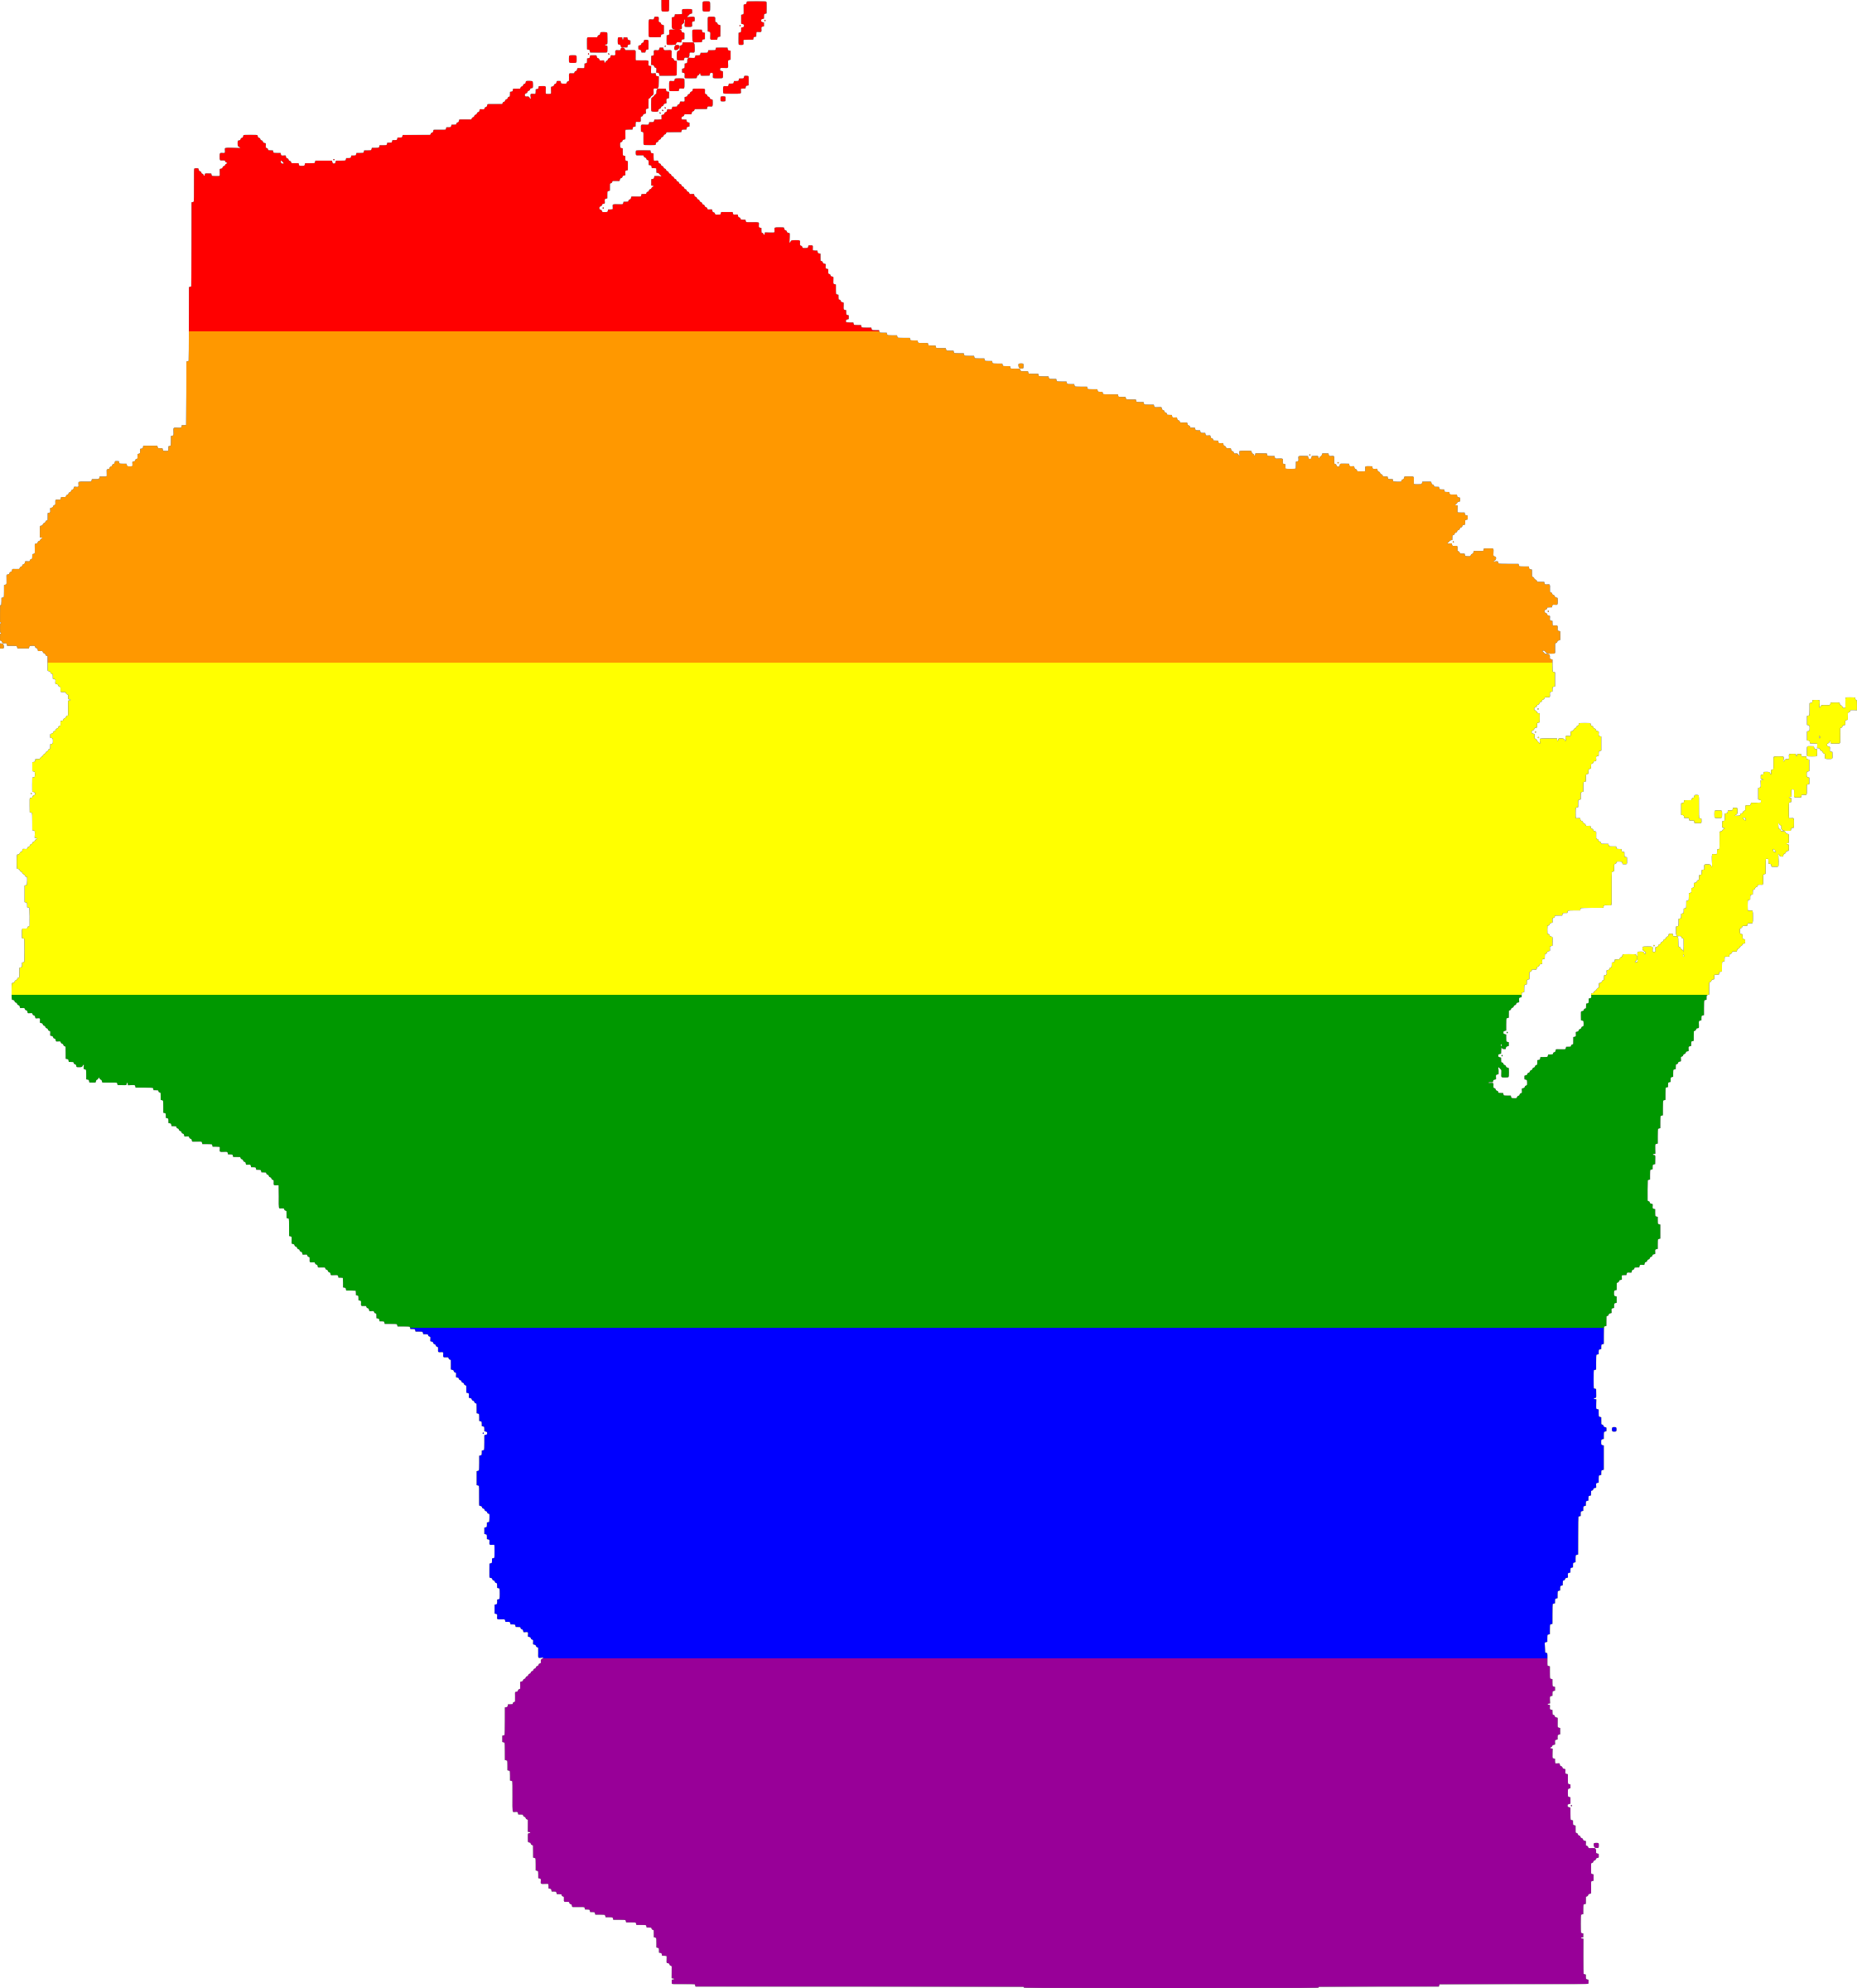 The Rainbow State of Wisconsin by AdamStanislav